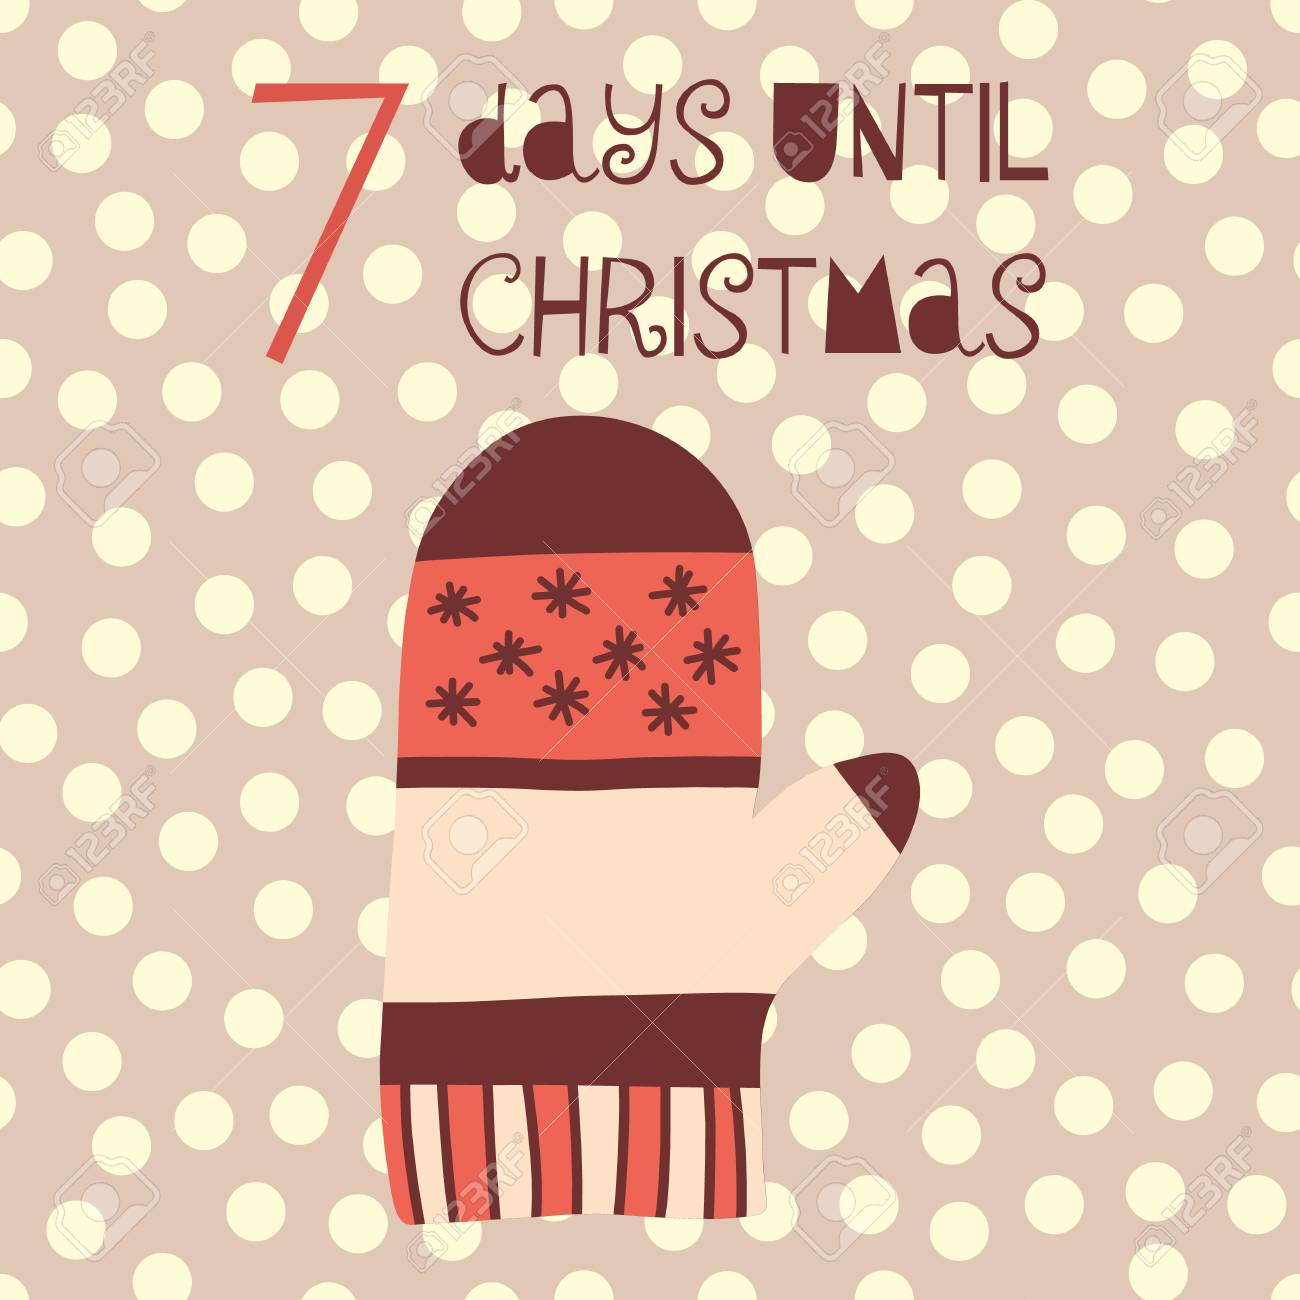 How Many Days Until Christmas Countdown.7 Days Until Christmas Vector Illustration Christmas Countdown